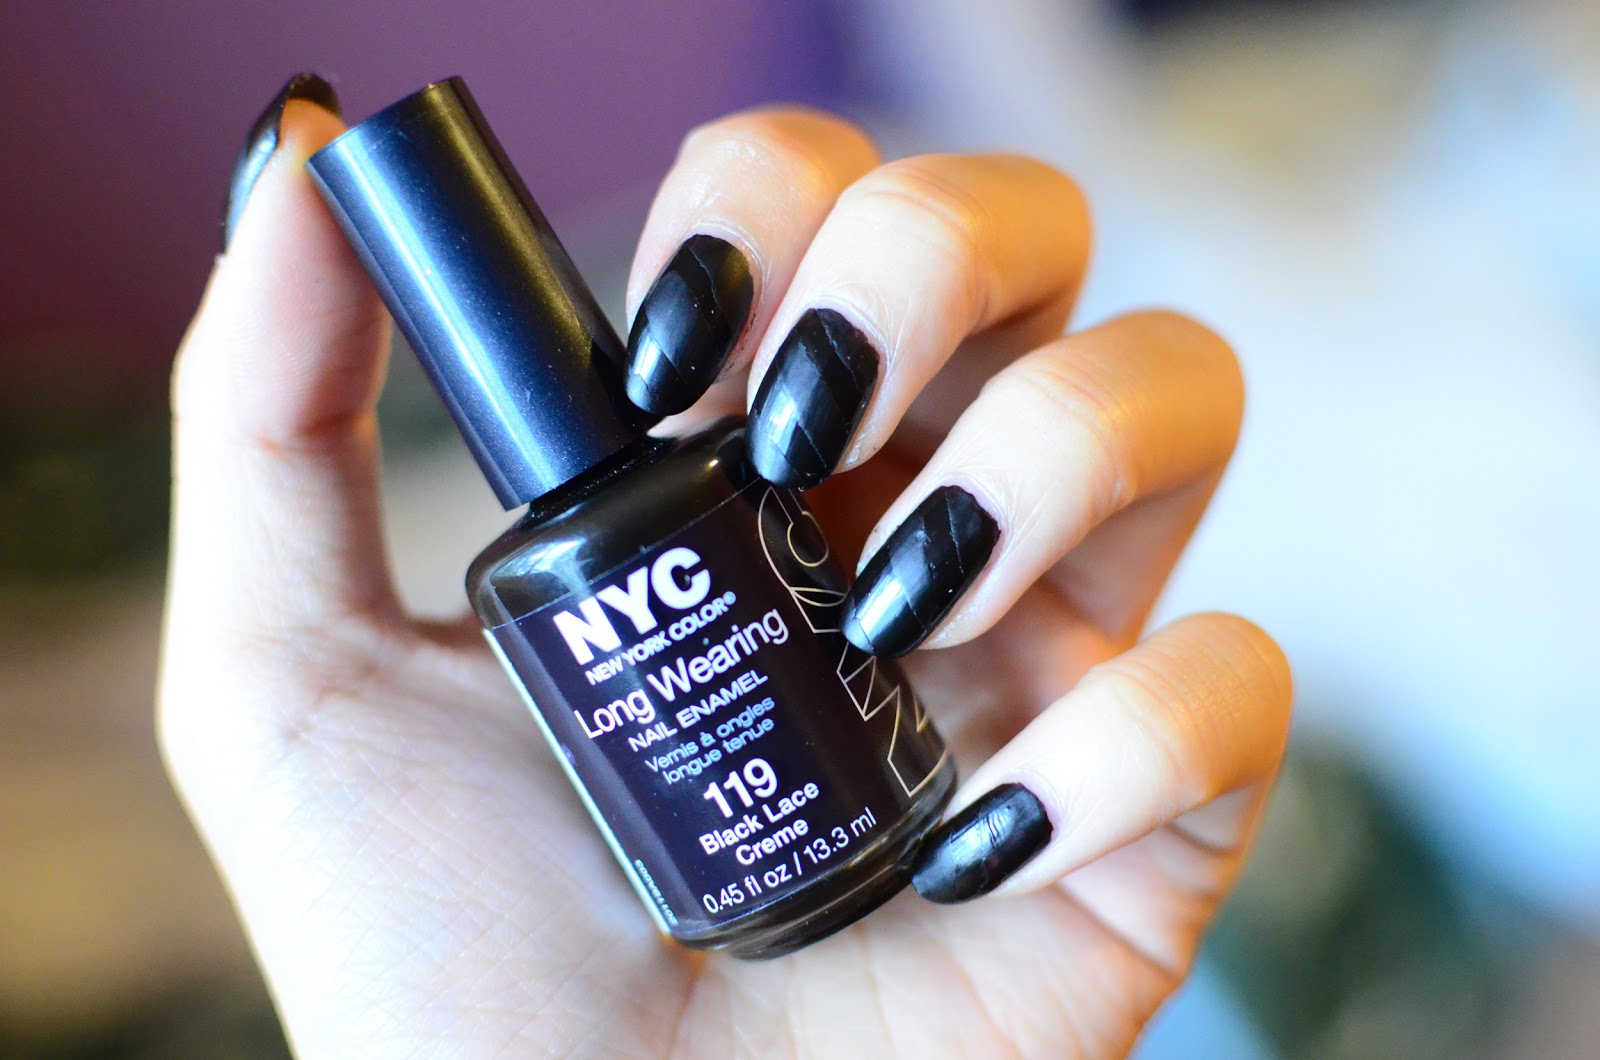 fun size beauty: New York Color Long Wearing Nail Enamel in 119 ...